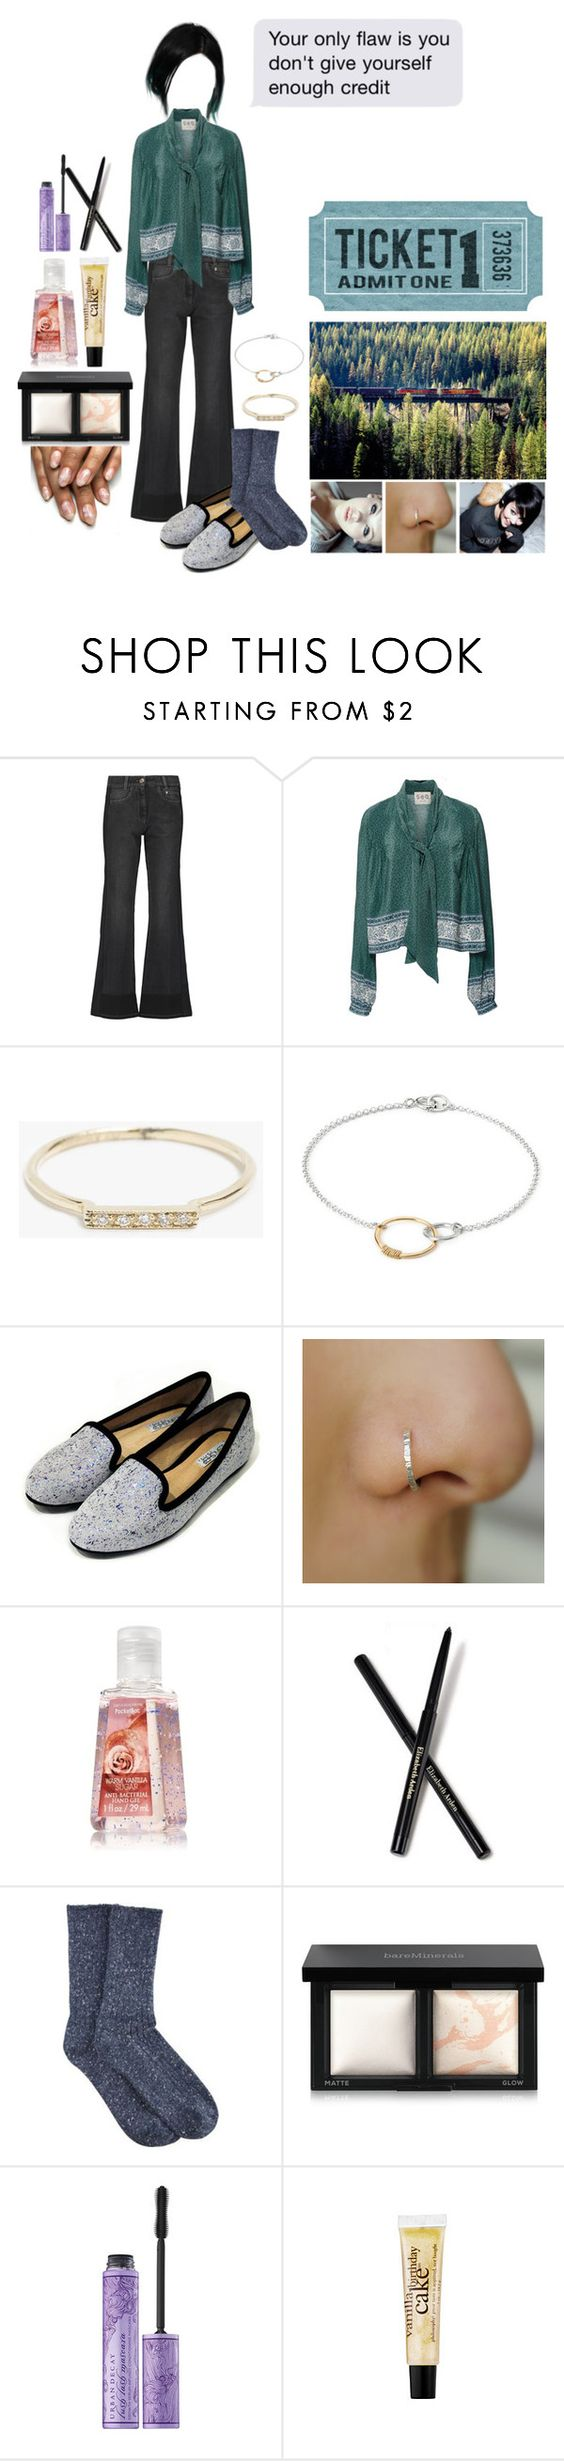 """Pez 12"" by stockmon ❤ liked on Polyvore featuring Sonia Rykiel, Sea, New York, blanca monrós gómez, Elizabeth Arden, Hue, Bare Escentuals, Urban Decay and philosophy"